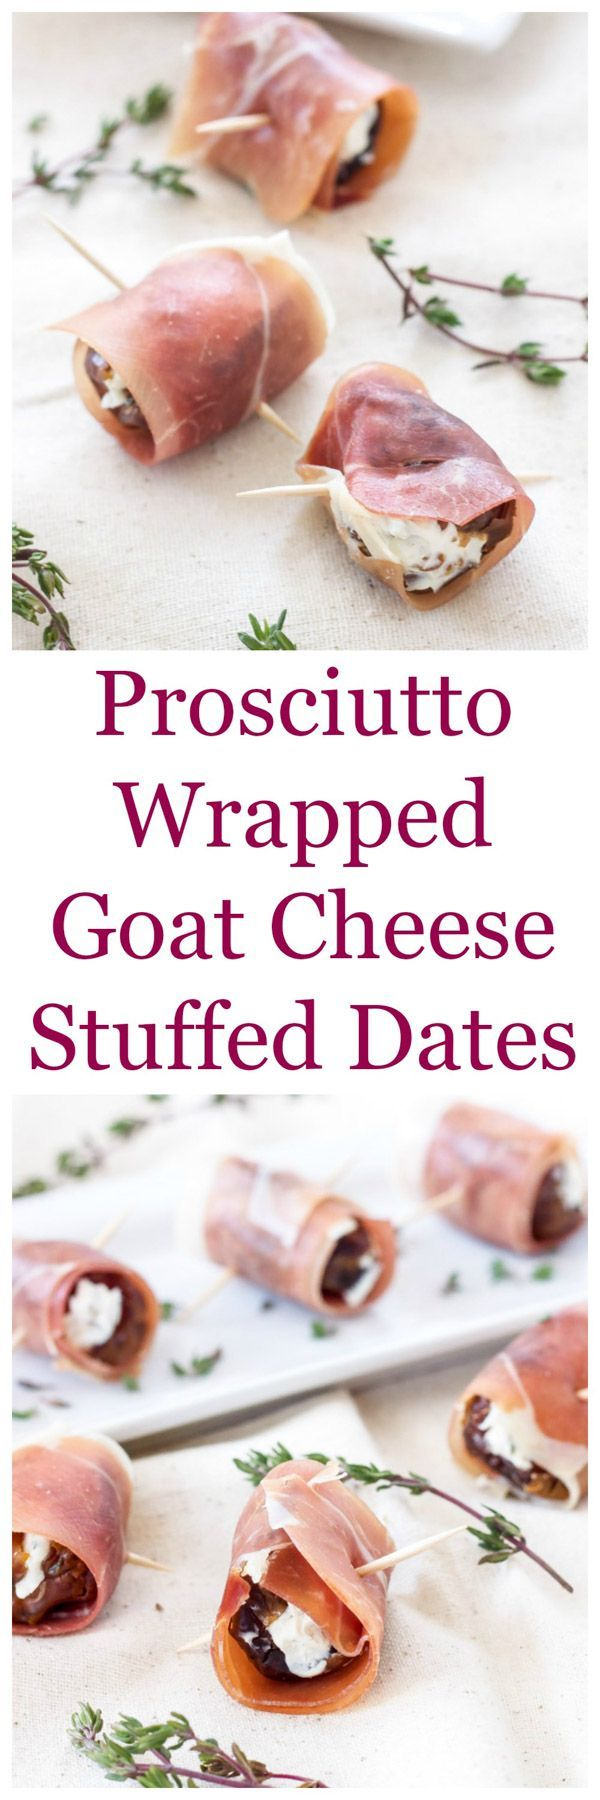 Prosciutto Wrapped Goat Cheese Stuffed Dates | A drool worthy one bite, easy to make, sweet and salty appetizer! | www.reciperunner.com